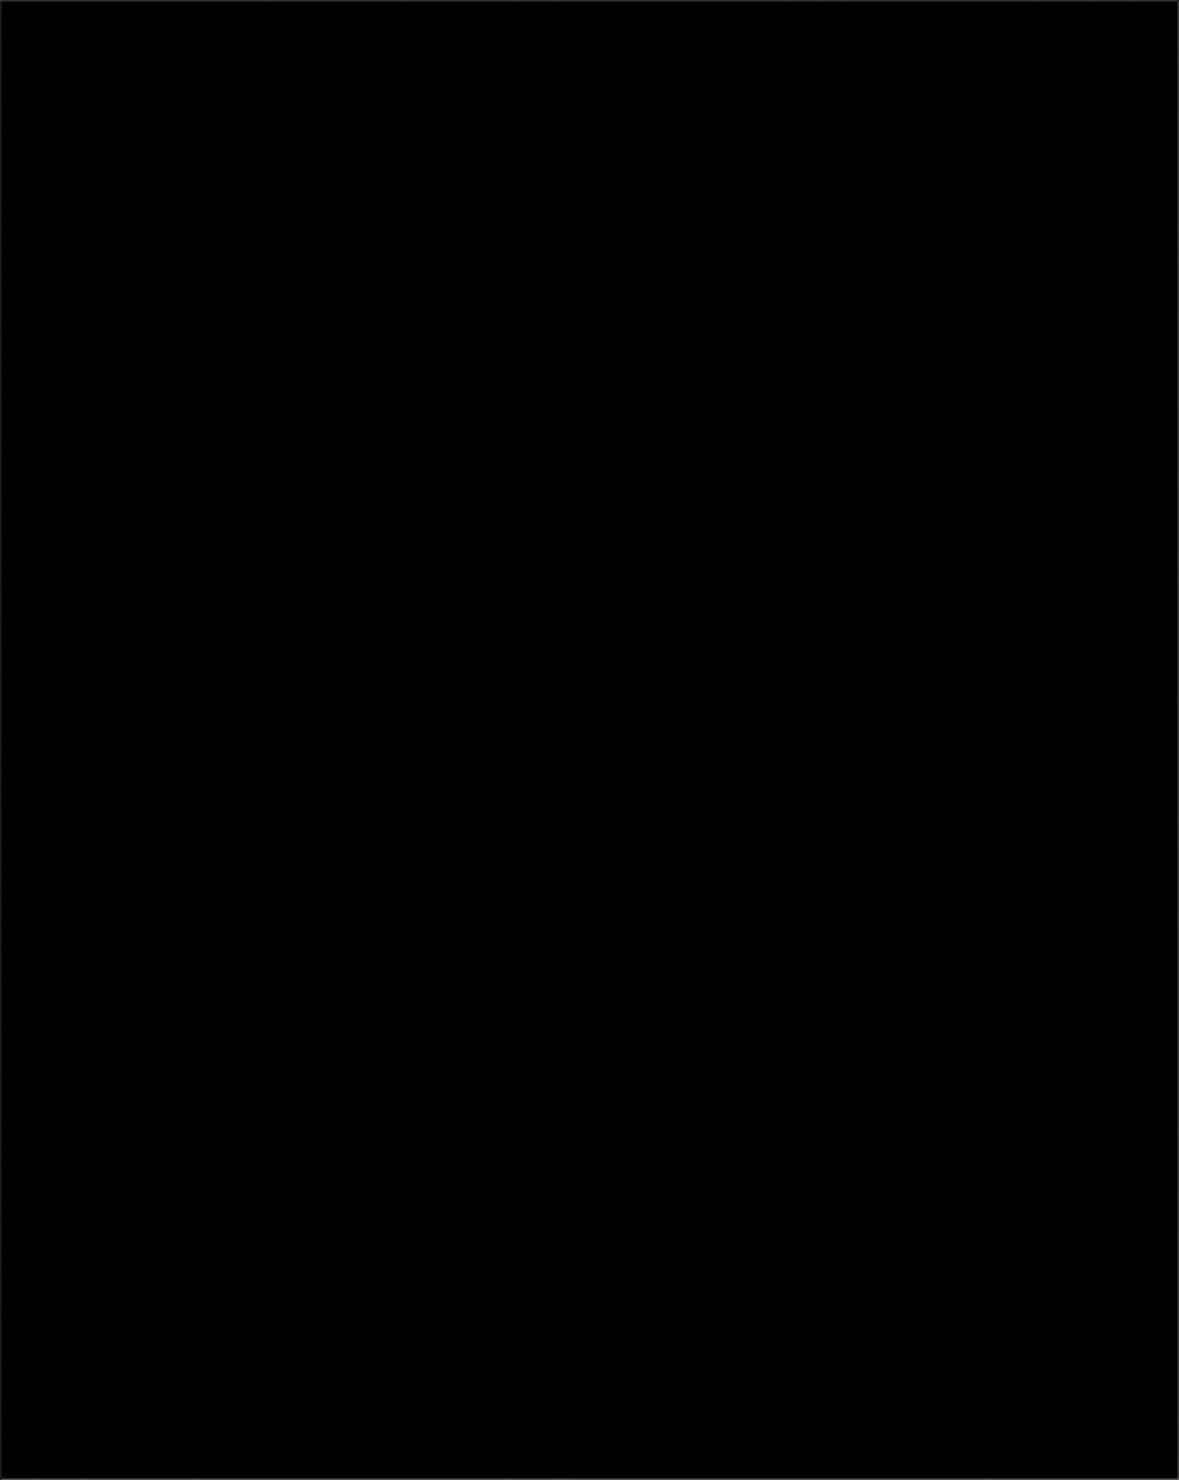 Pacon Plastic Poster Board, 22-in. x 28-in., Black, 25 Sheets (MMK04701) by PACON